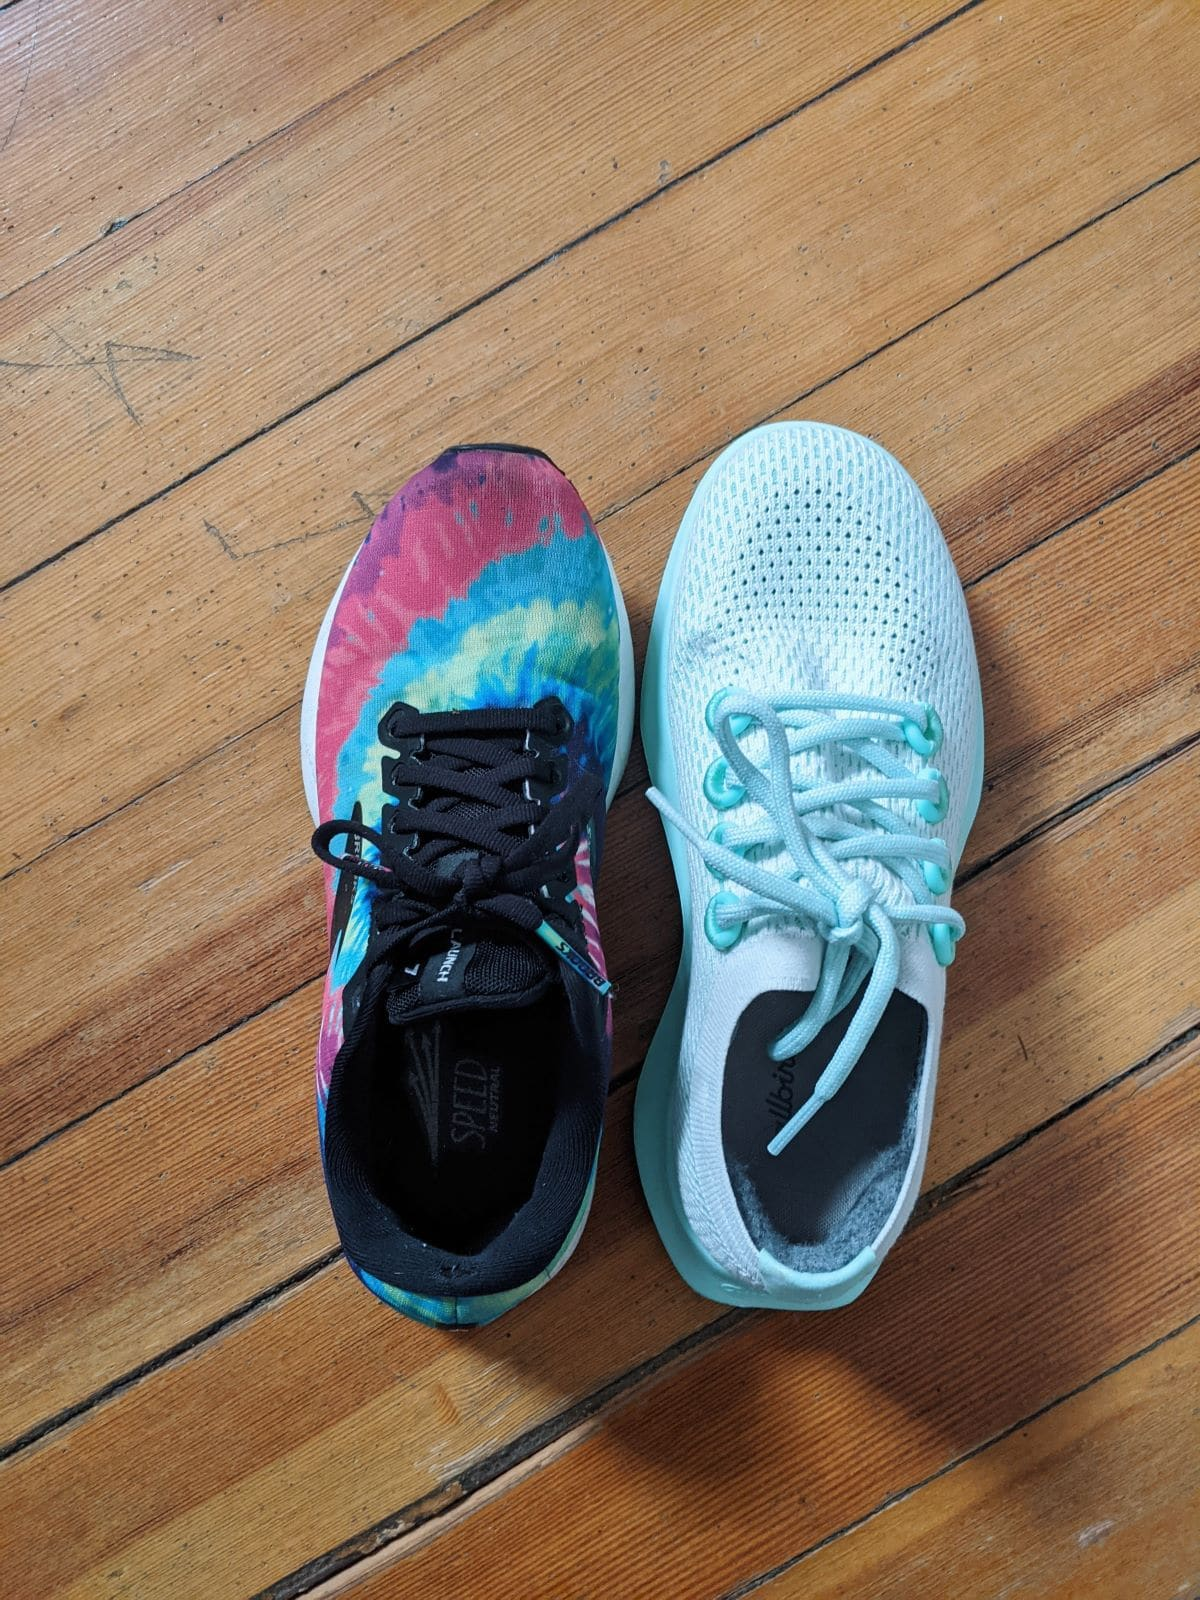 My tie dye Brooks Launch 7 in size 7.5 next to the Cyclone Allbirds Tree Dashers in size 8